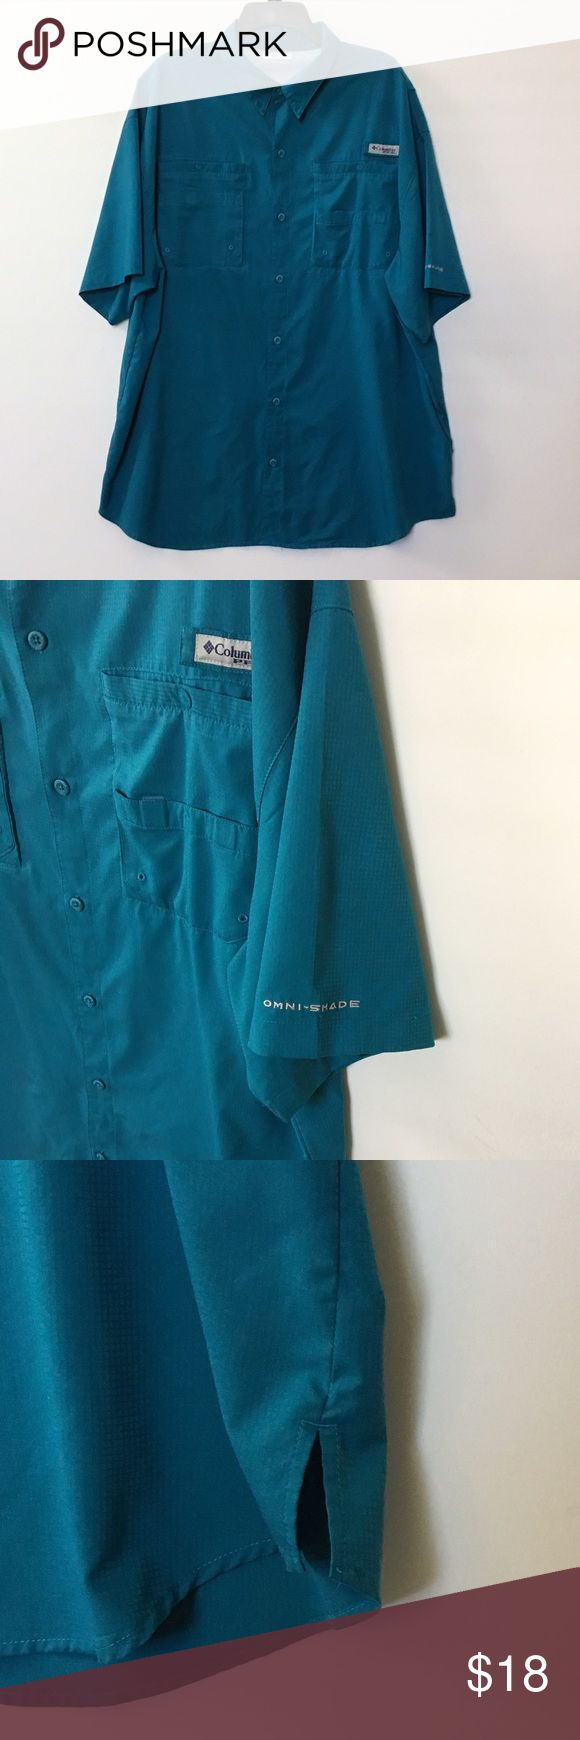 Columbia Sportswear Company Shirt Columbia Sportswear Company Button Down short sleeve shirt, Aqua color, a pocket on each side with a snap closure. Pleats on the side. Size XXL/2TG Shirts Casual Button Down Shirts